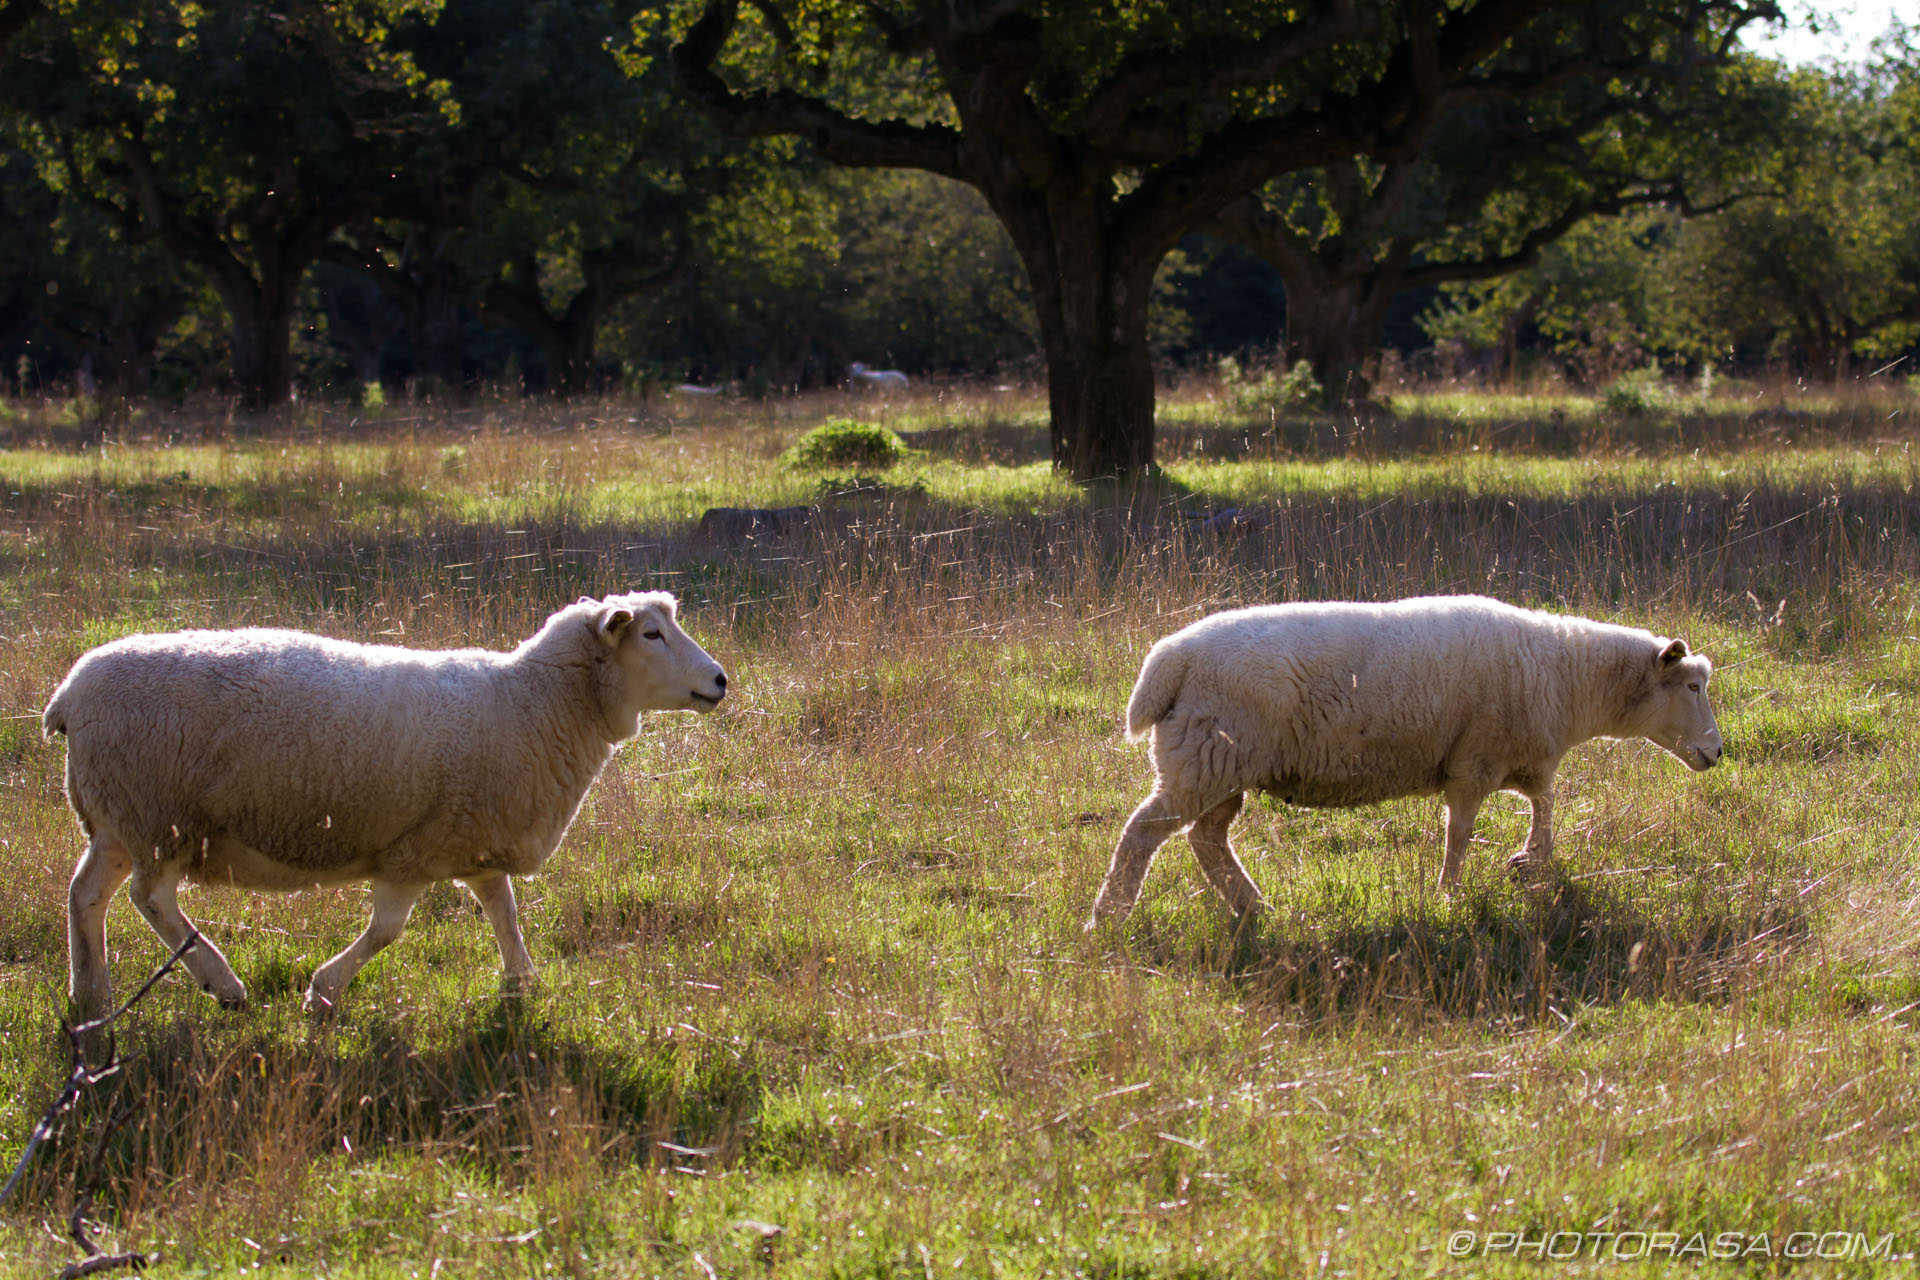 https://photorasa.com/sheep/two-romney-sheep-walking-across-field-in-sunlight/